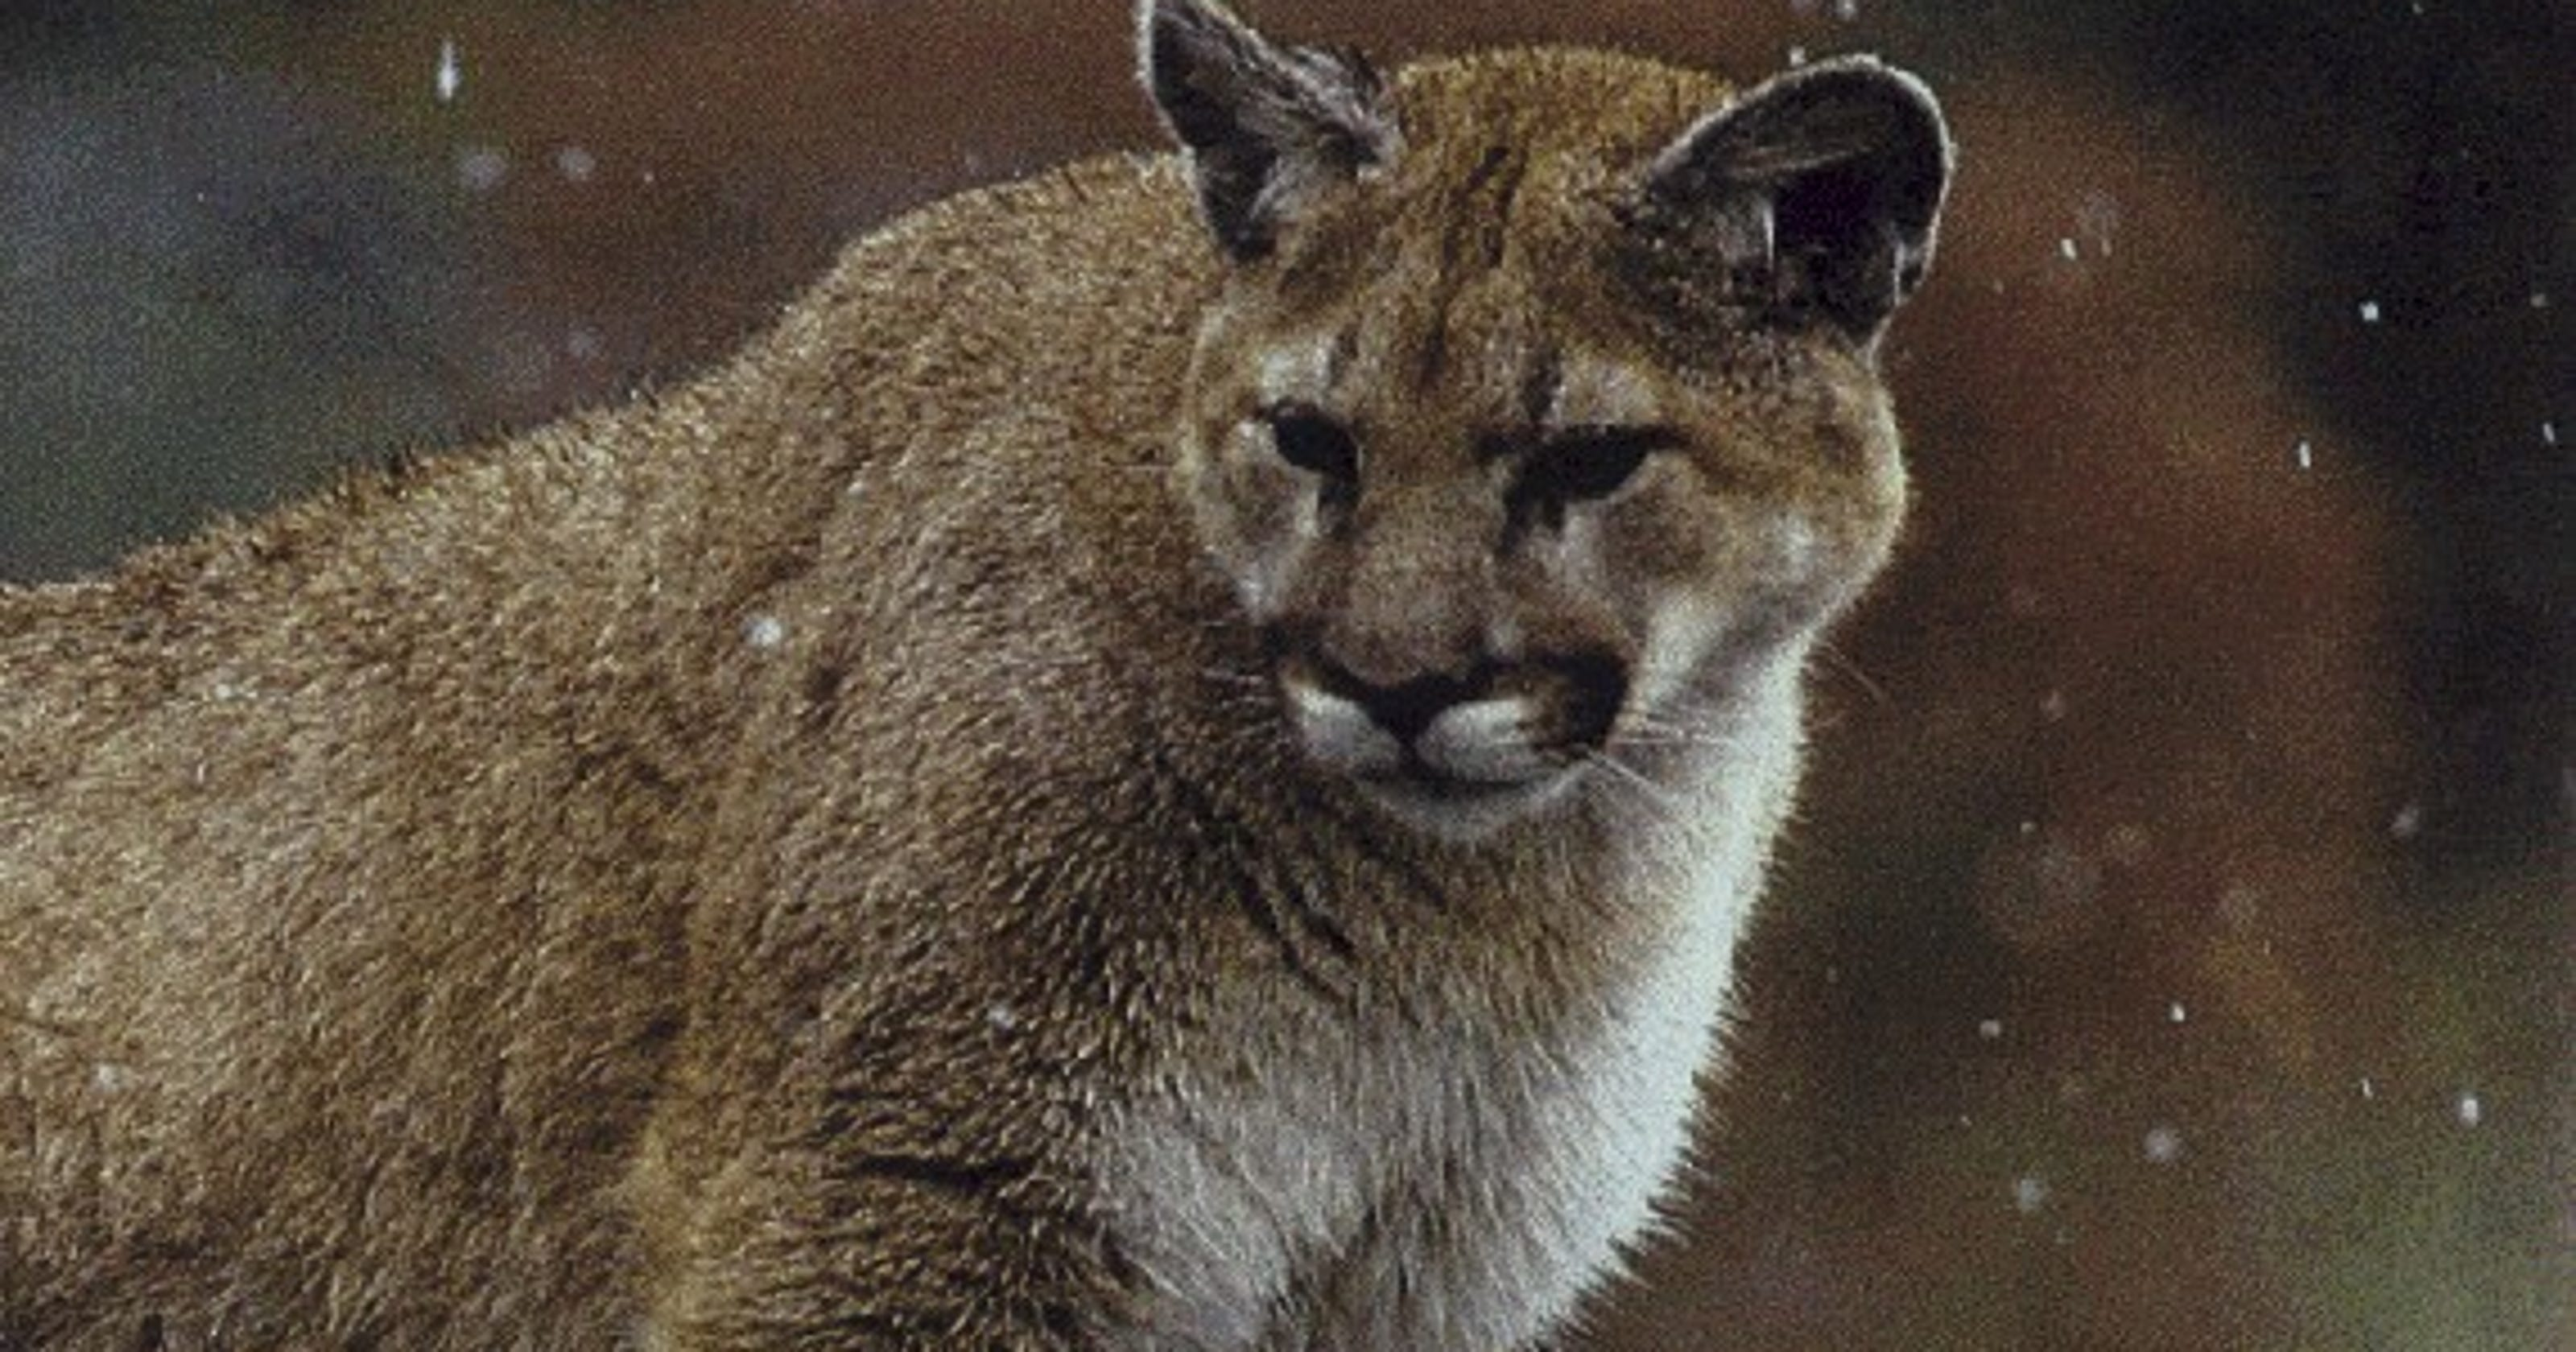 Runner kills mountain lion by suffocating it after attack in Colorado f4baac1a86